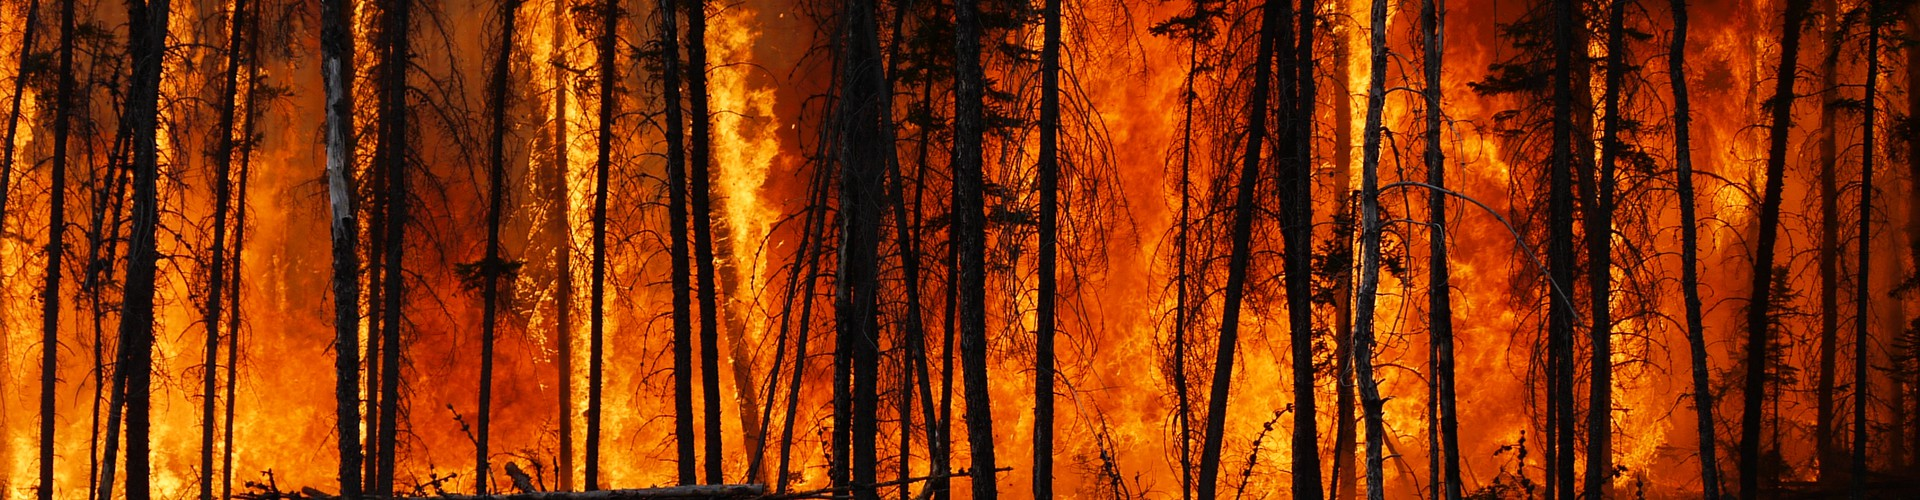 Boreal forest fire in Canada (Credit: Stefan Doerr via Imaggeo, CC BY-ND 3.0)